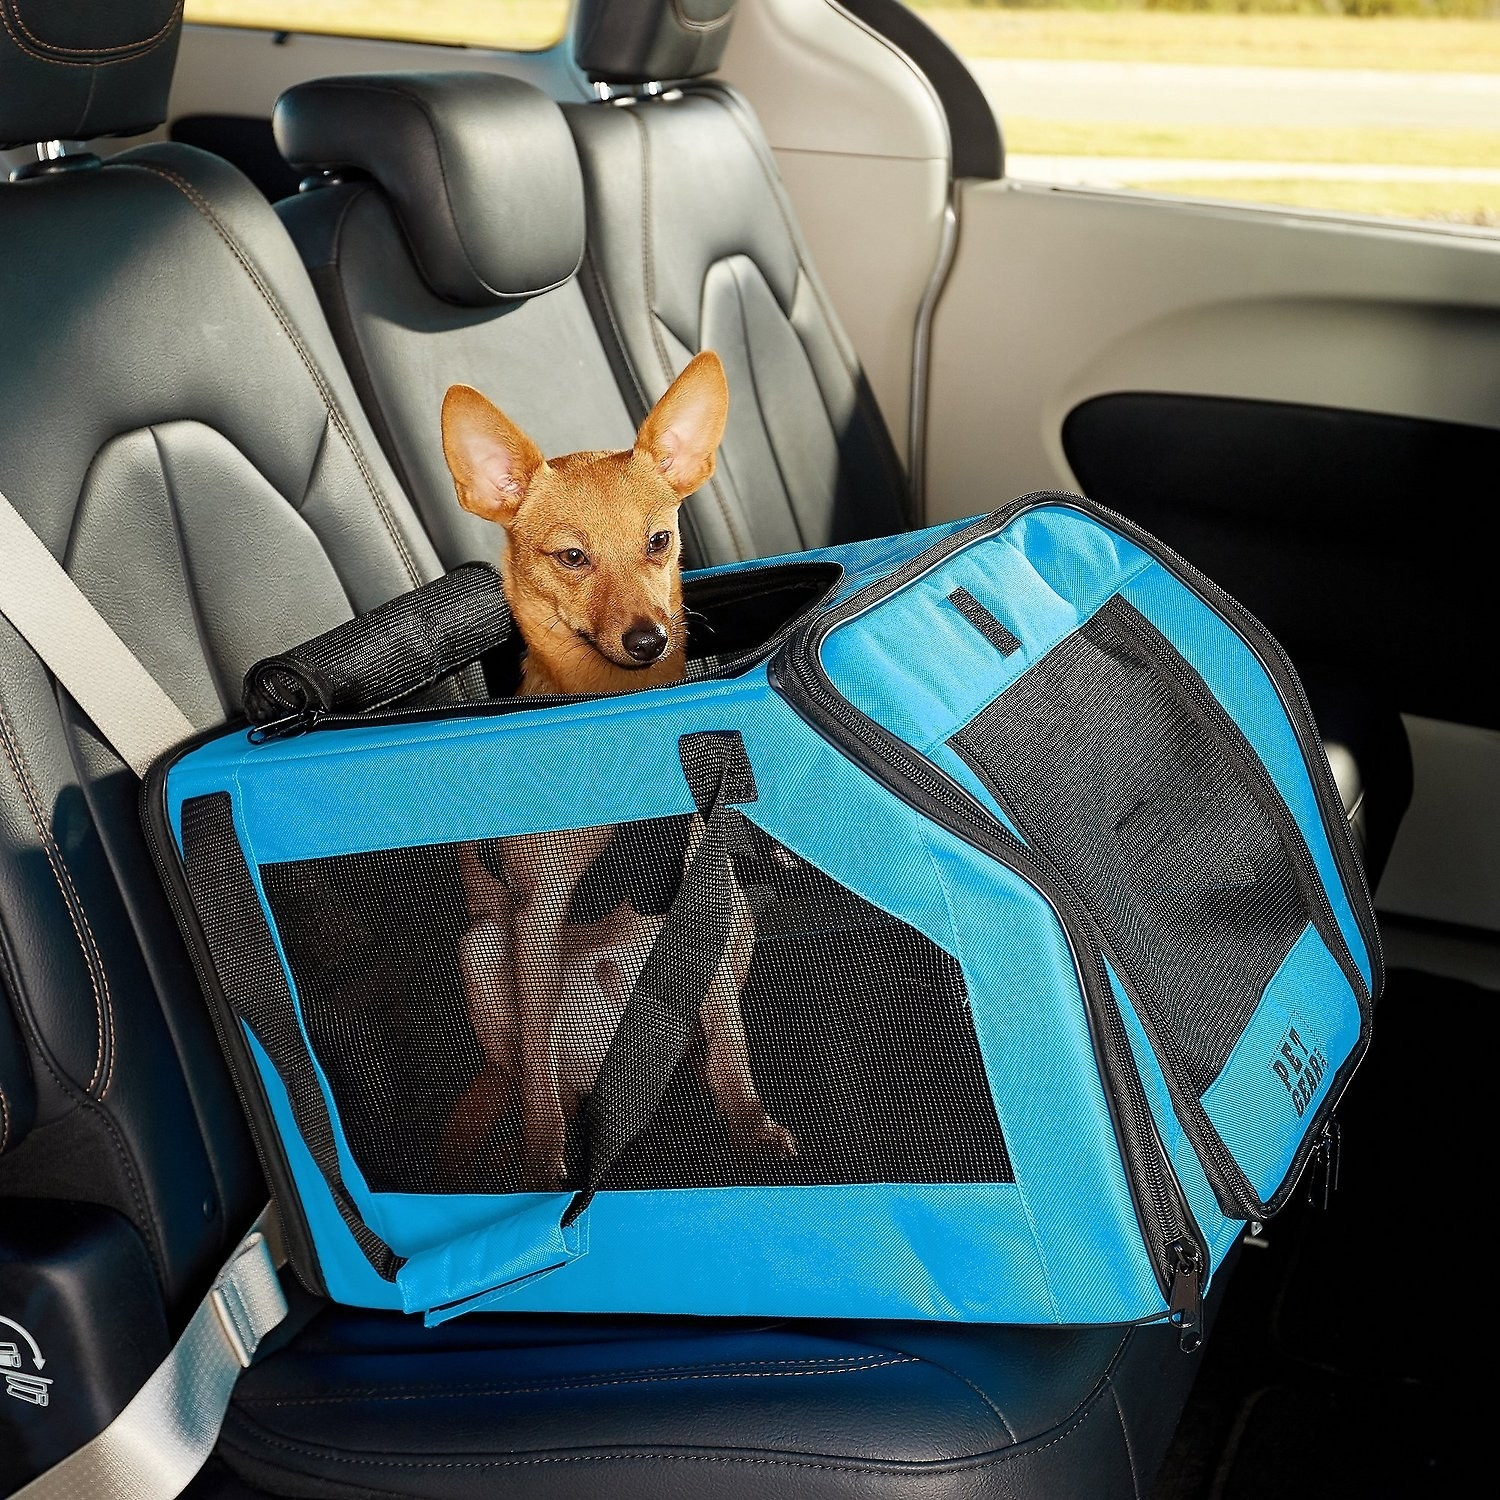 A small dog in the carrier that is strapped into the backseat of a car